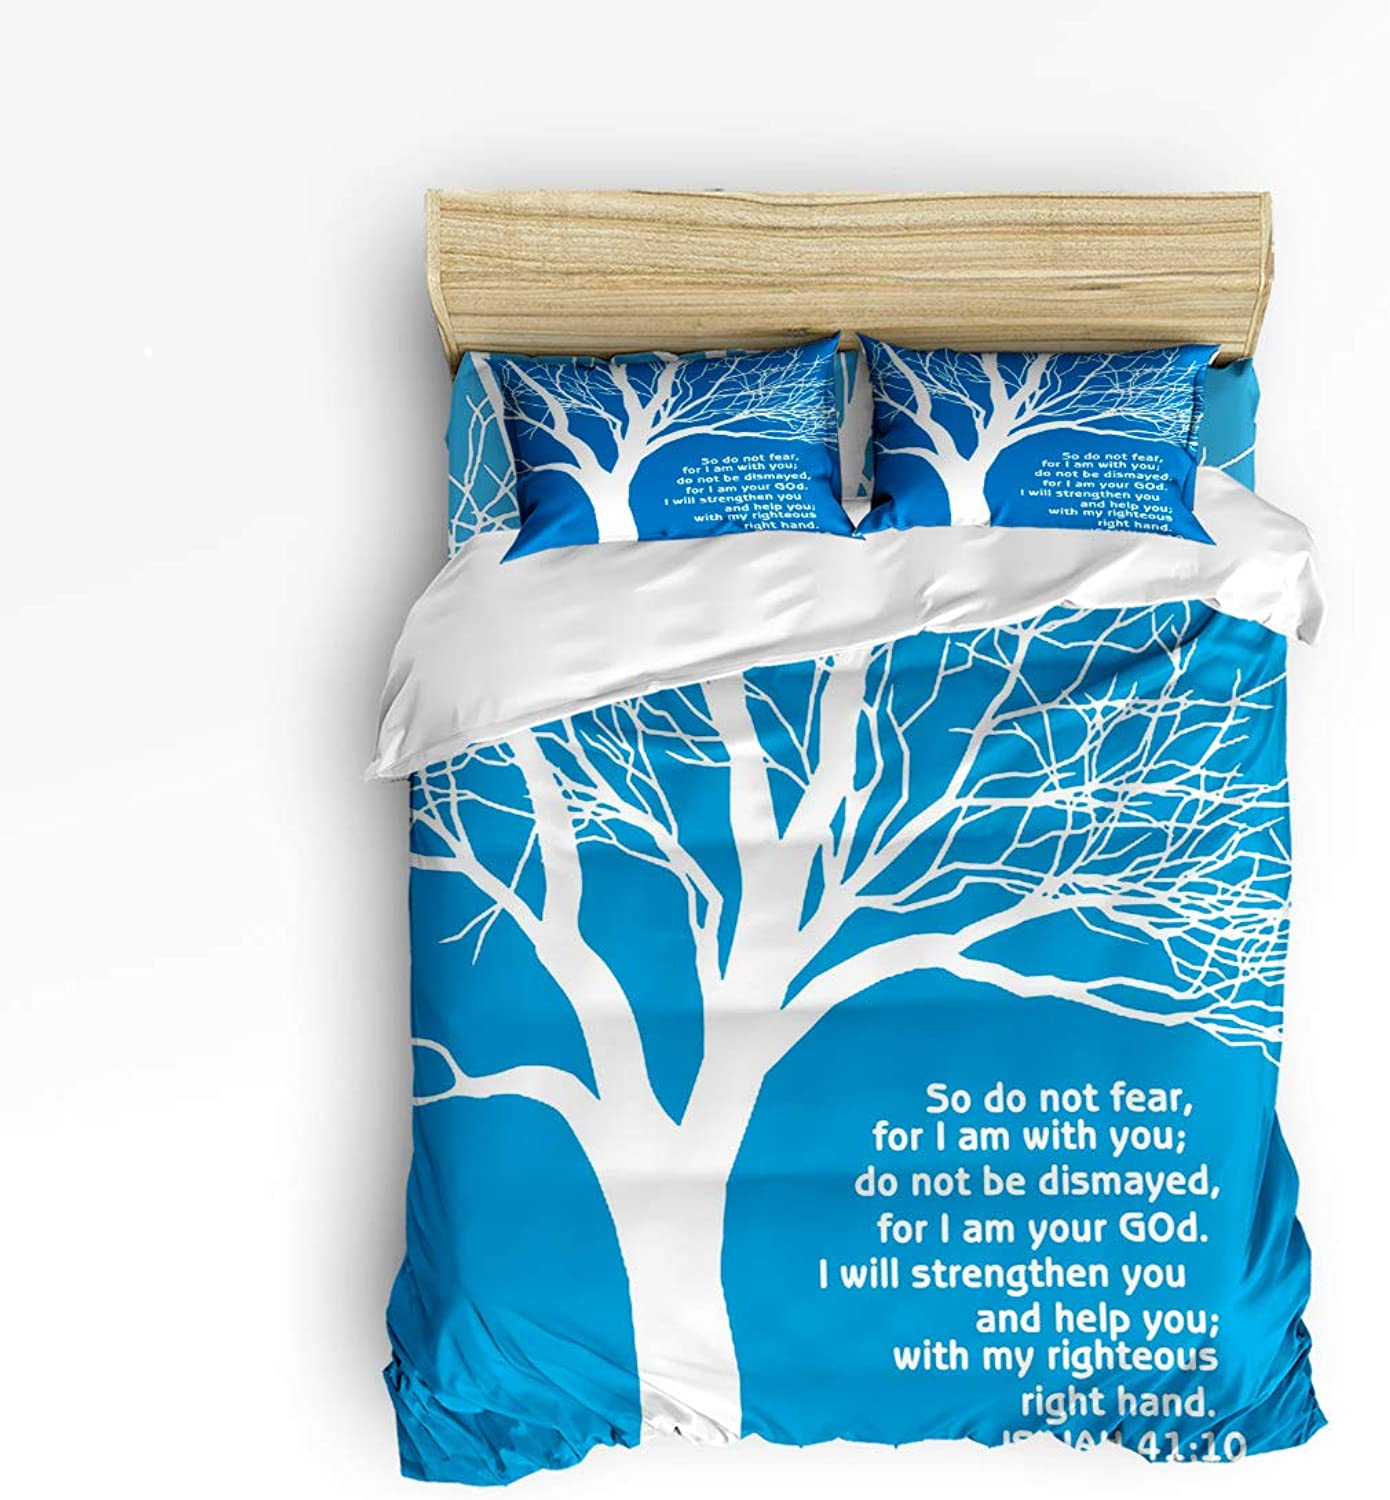 Duvet Cover Set Twin Size Christian Bible Verses Scripture Quotes So Do Not Fear, for I Am with You Lightweight Microfiber Duvet Cover Sets